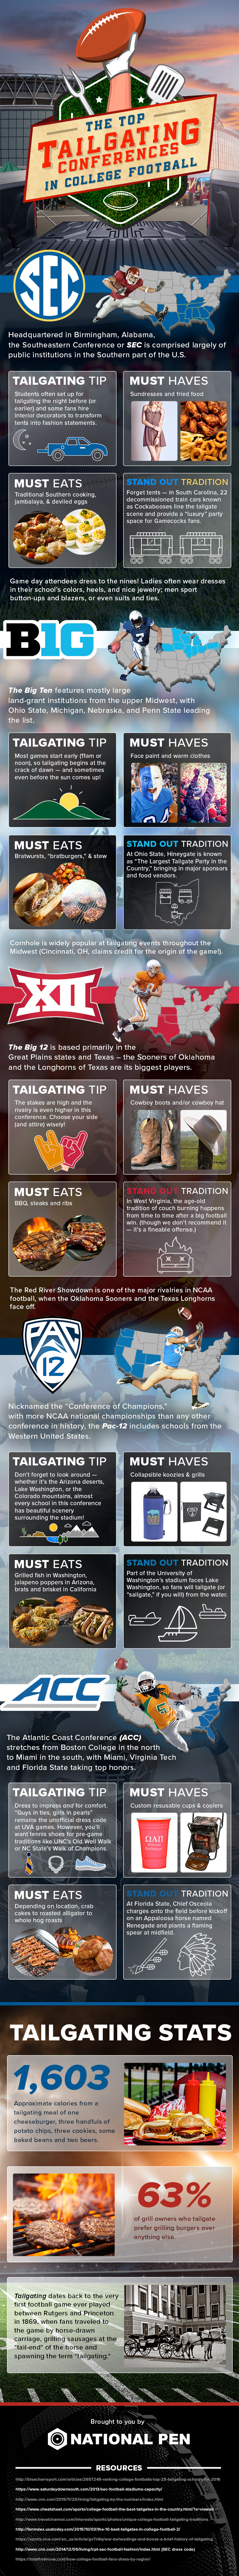 College Football Tailgating Infographic